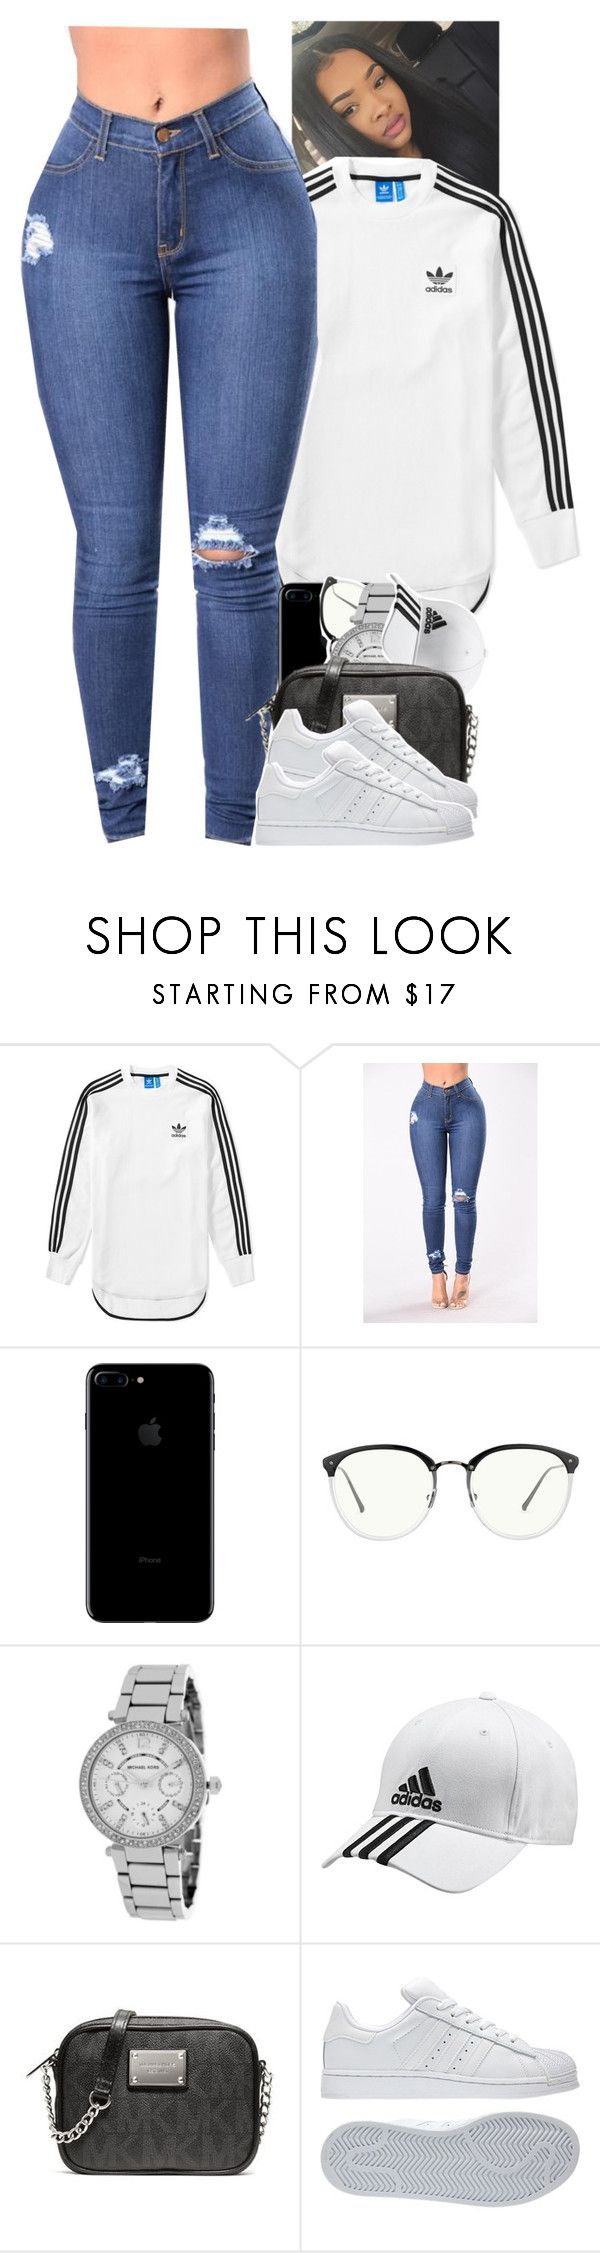 """Untitled #1889"" by toniiiiiiiiiiiiiii ❤ liked on Polyvore featuring adidas, Linda Farrow and Michael Kors"